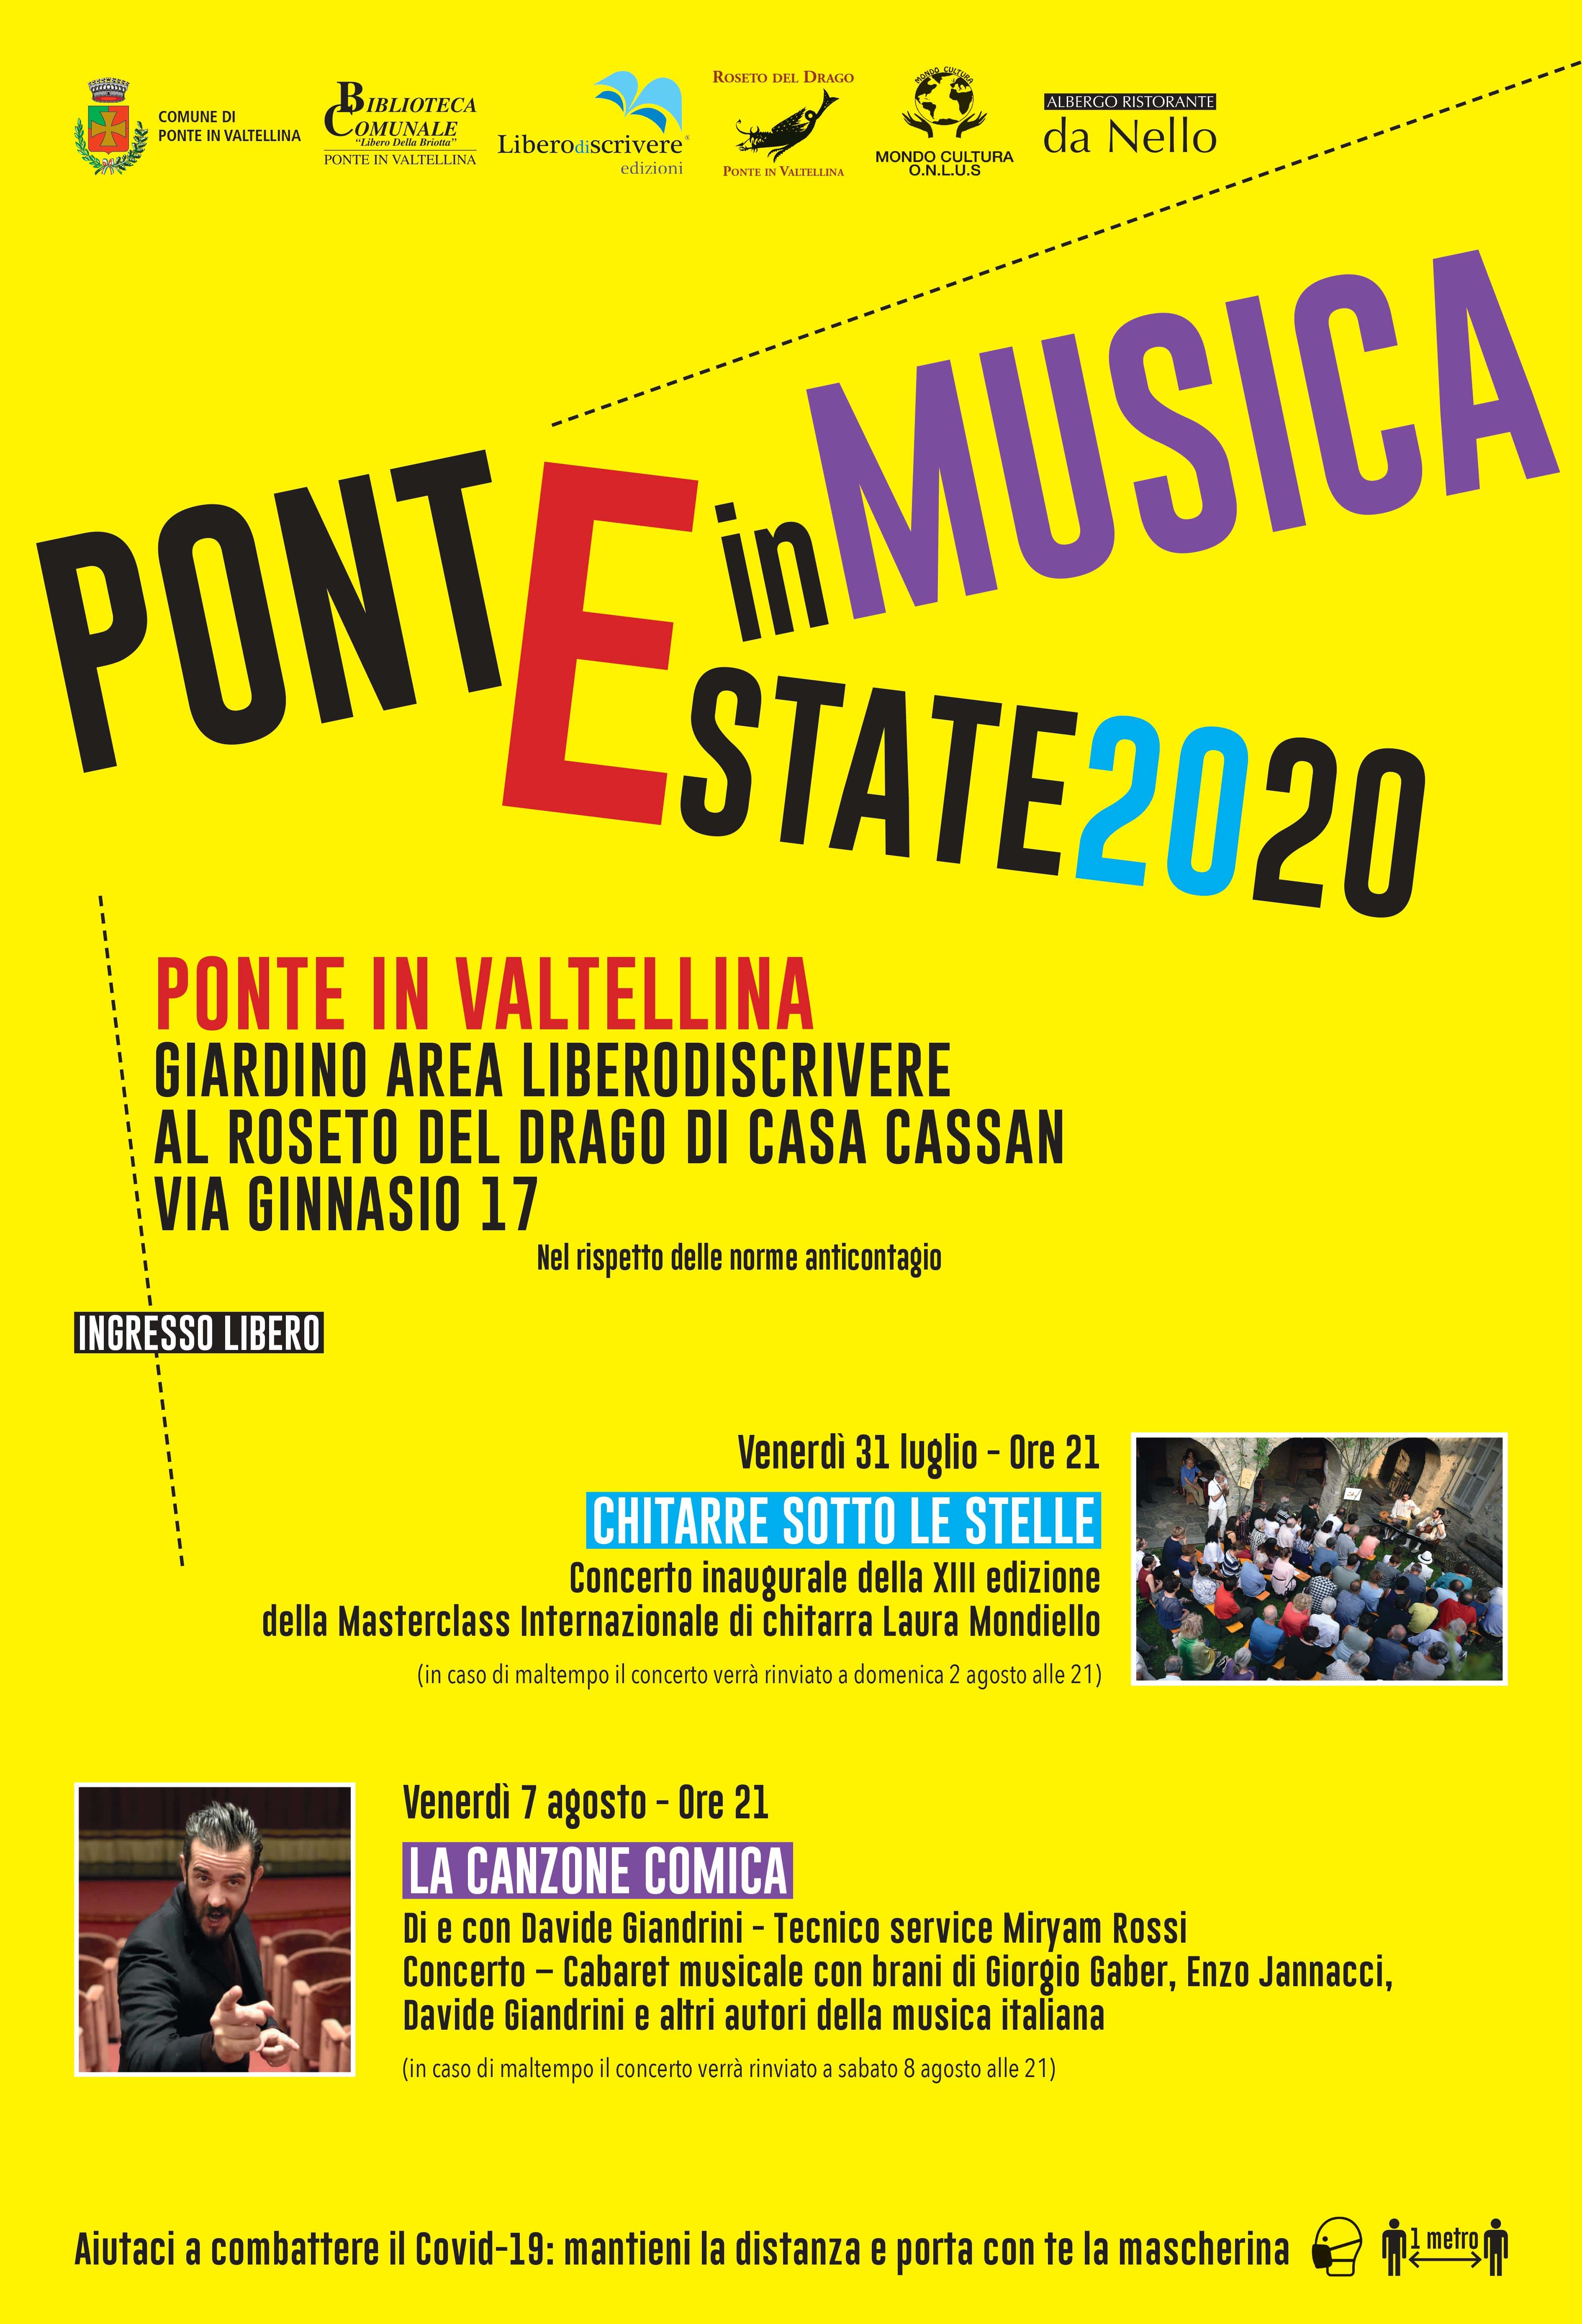 PonteinMusica Estate2020